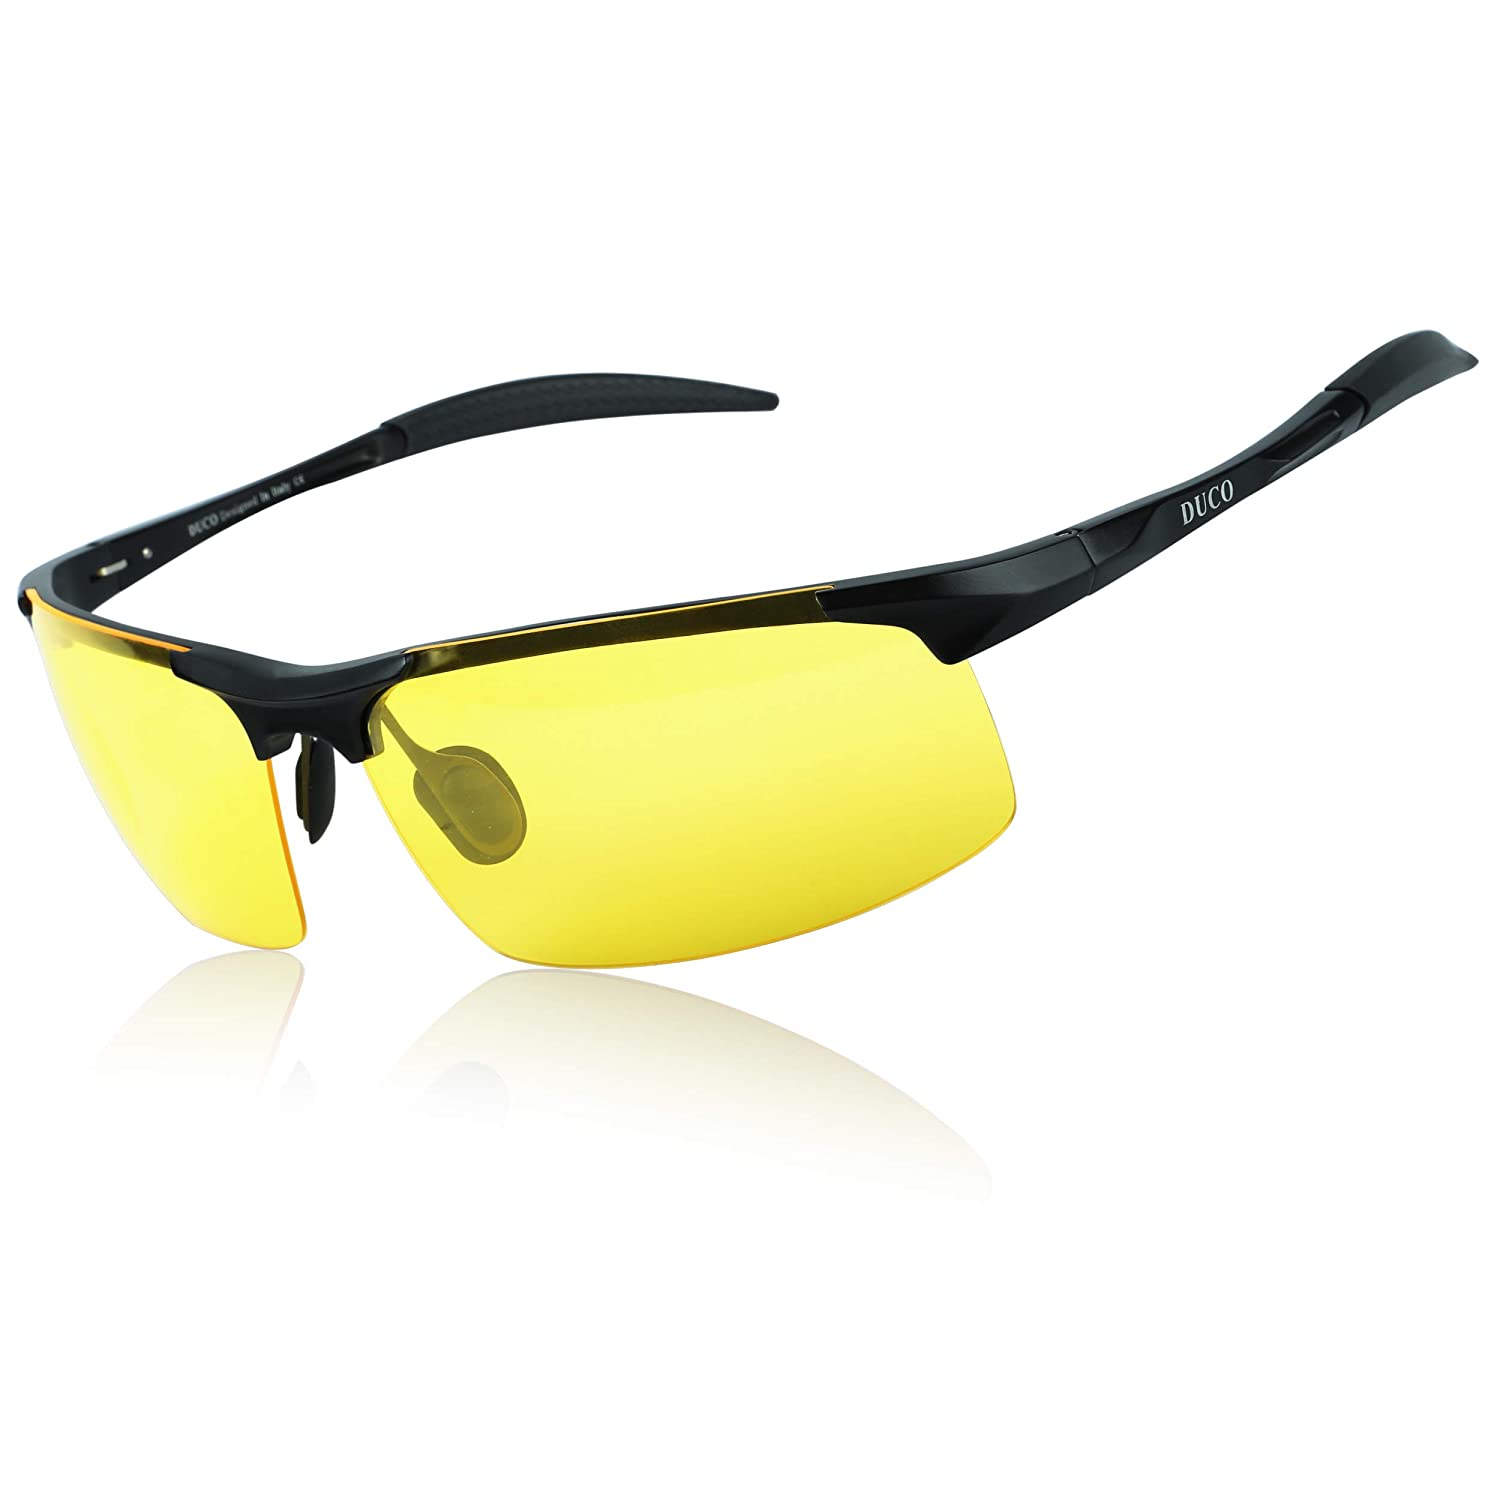 13f85031544 Amazon.com  Duco Night-vision Glasses Polarized Night Driving Men s  Shooting Glasses 8177  Clothing